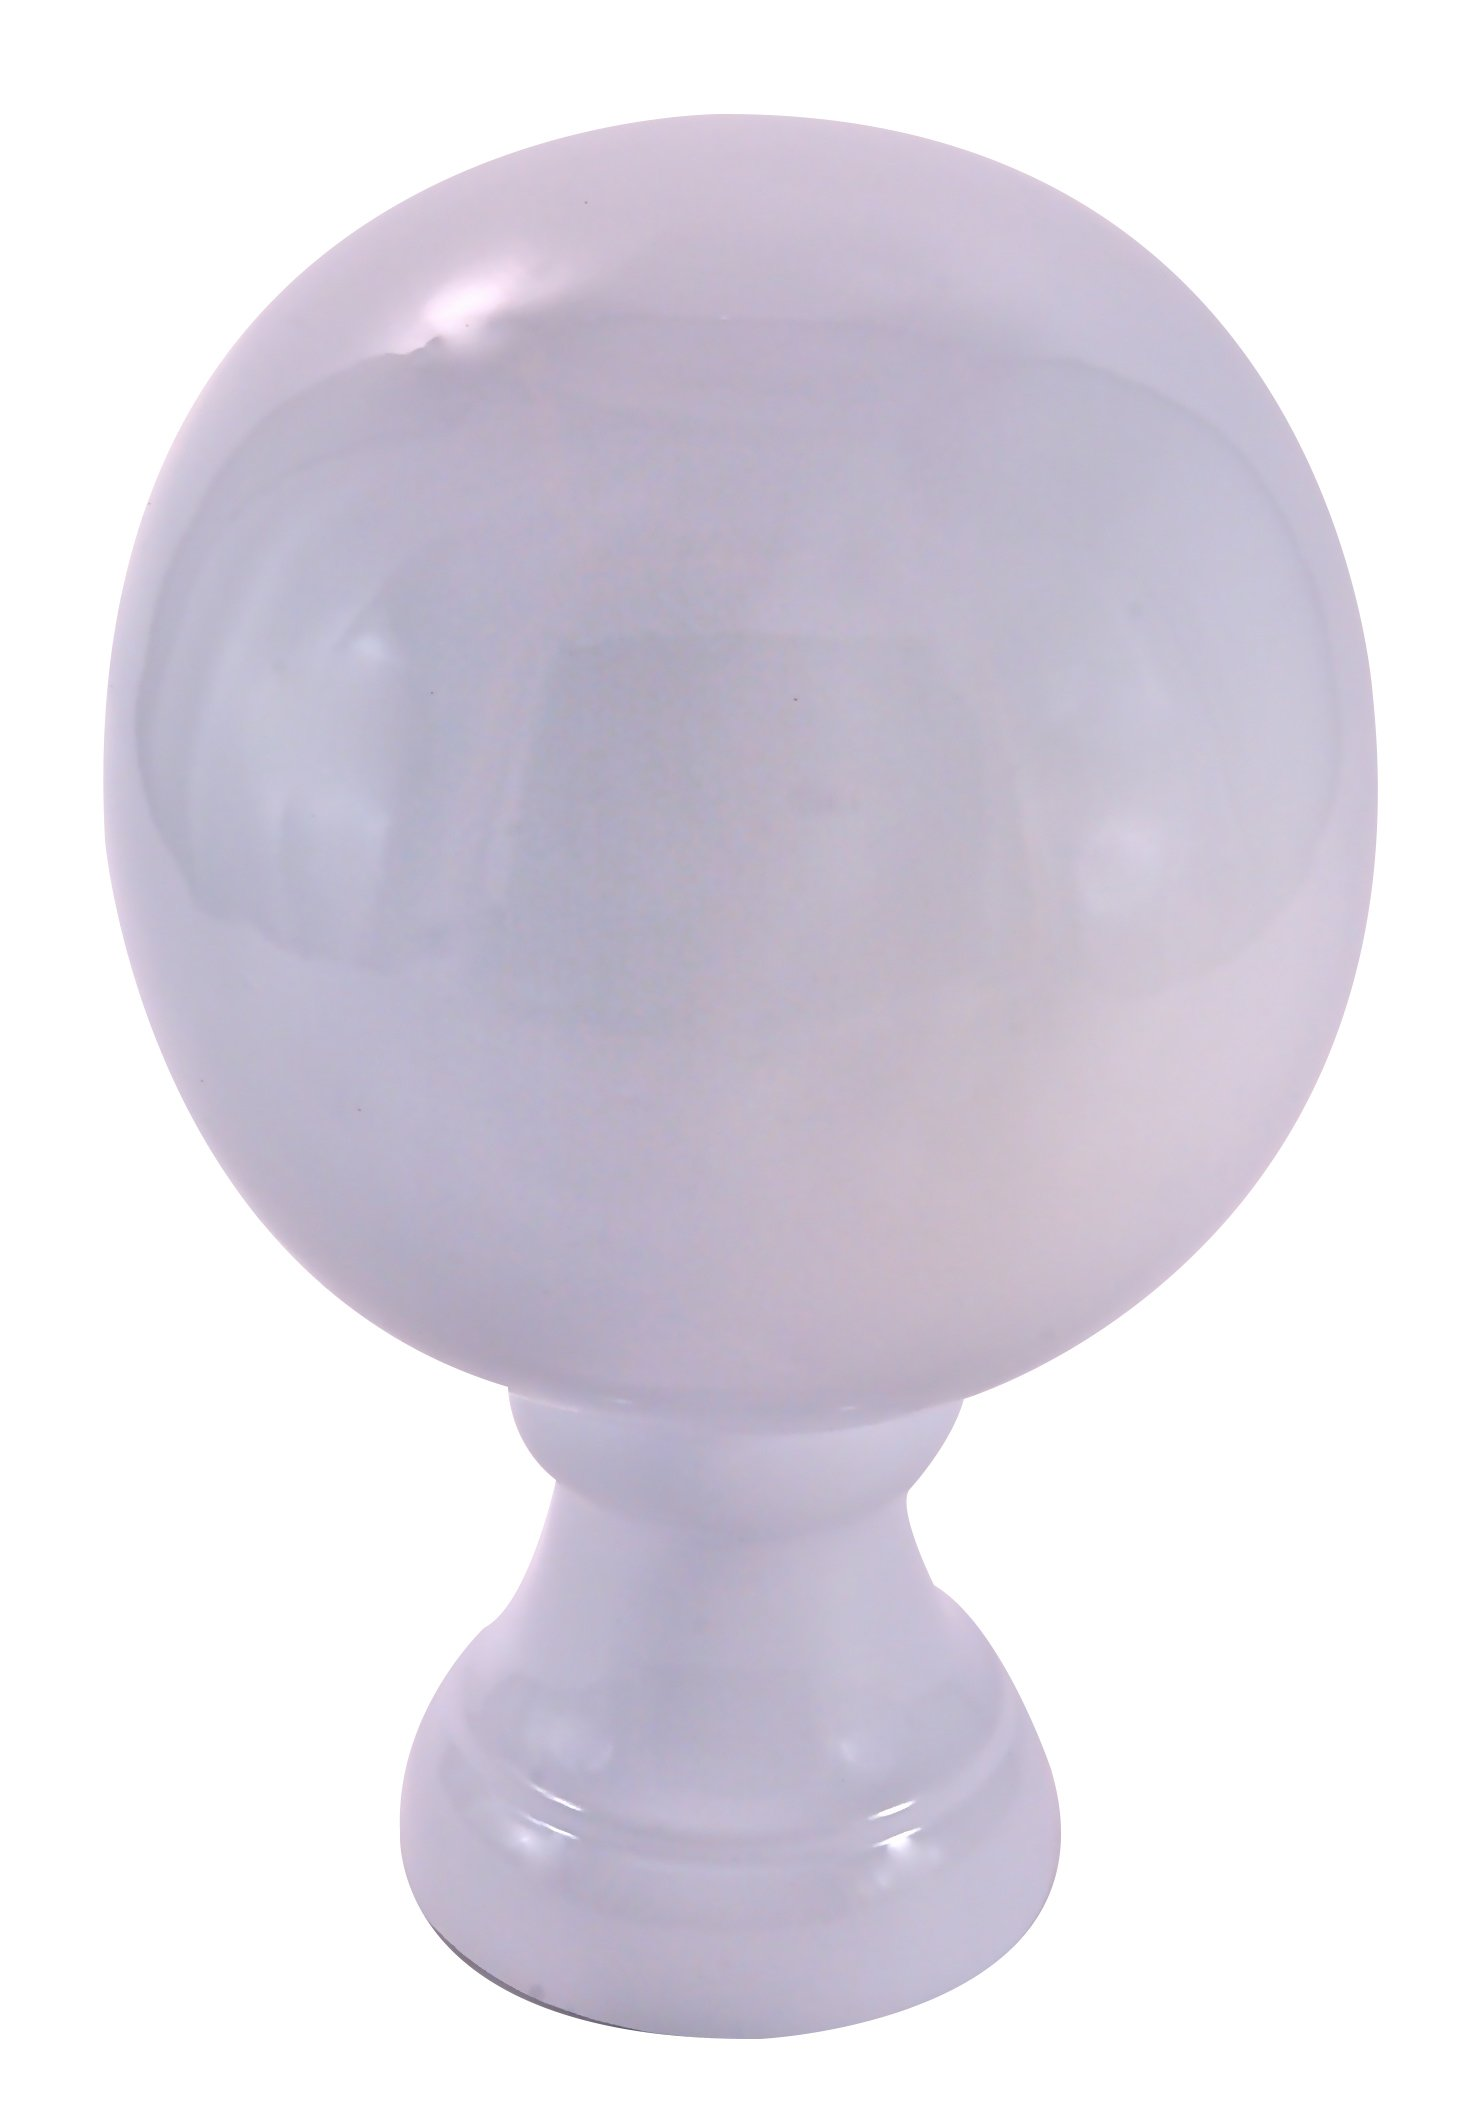 Dalvento Small Londoner Finial- White Gloss by Dalvento (Image #1)